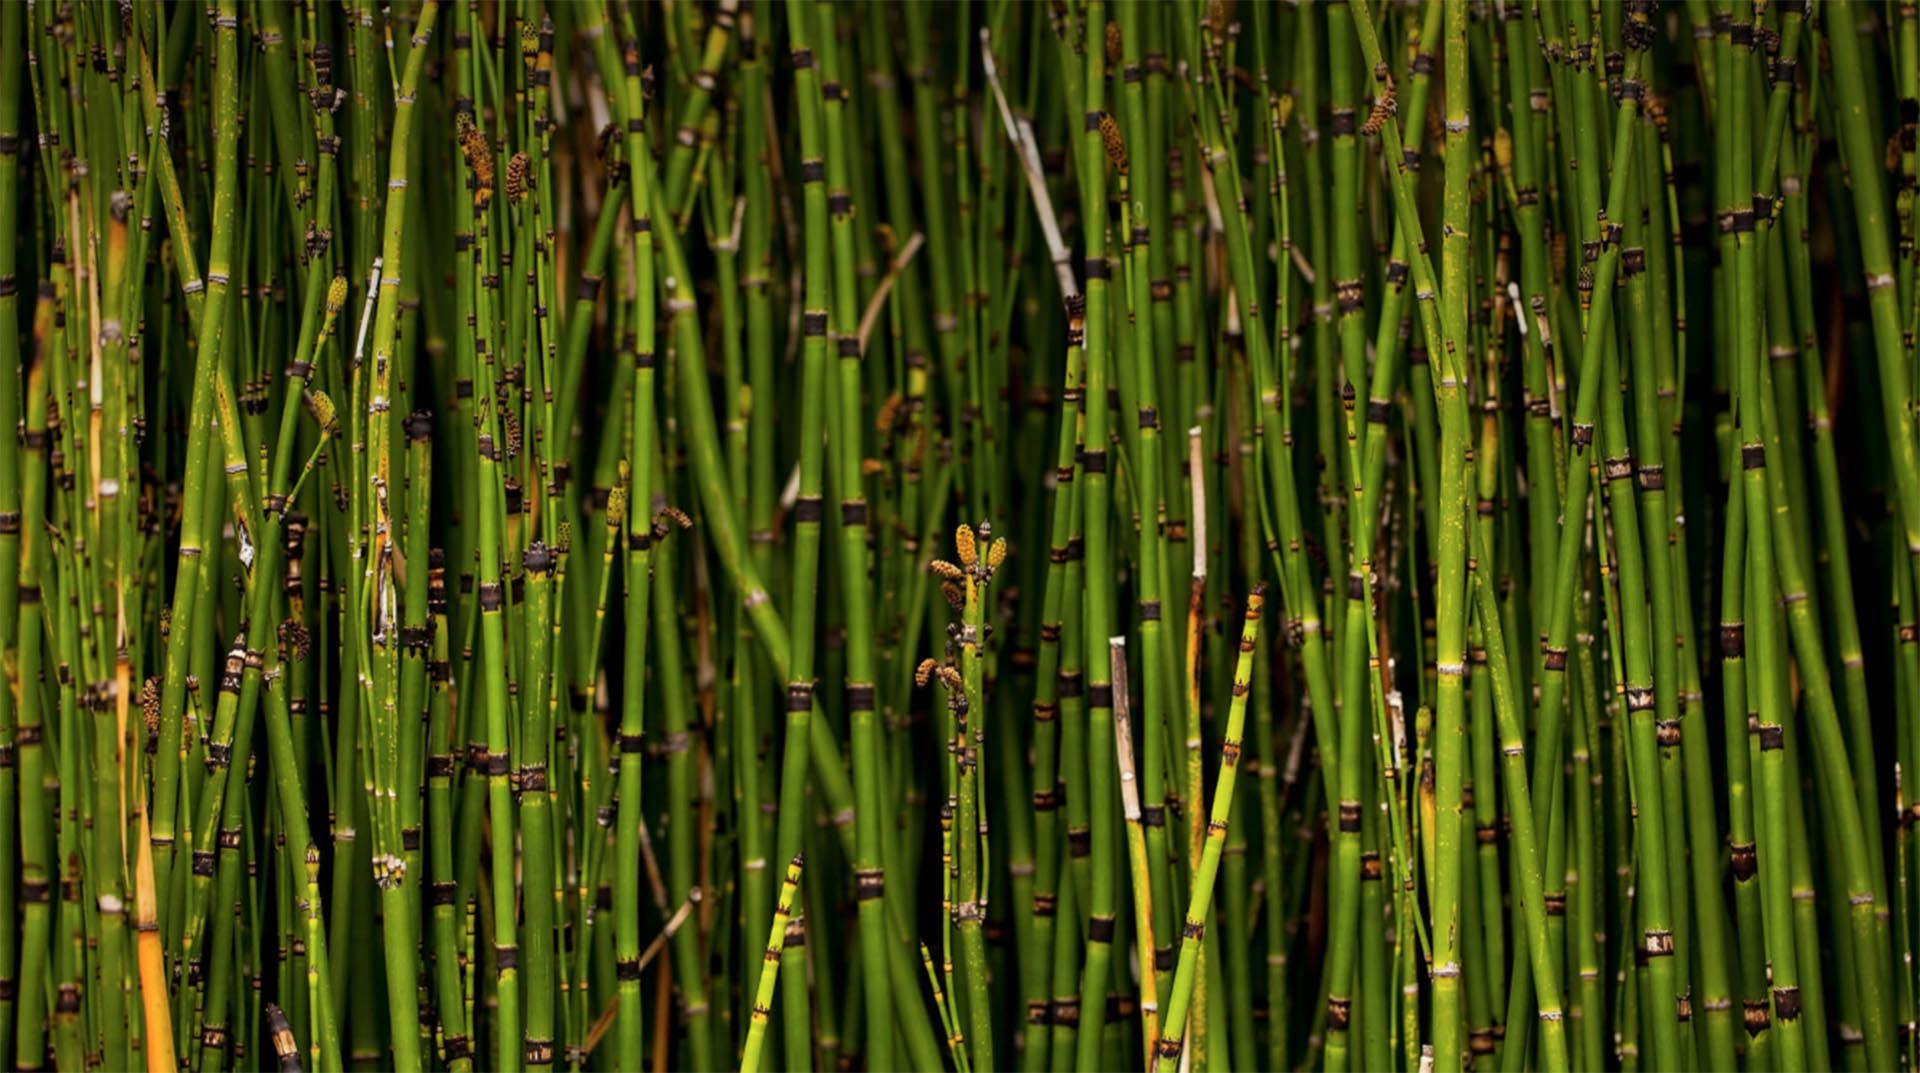 Horsetail Reed San Diego Zoo Animals Plants